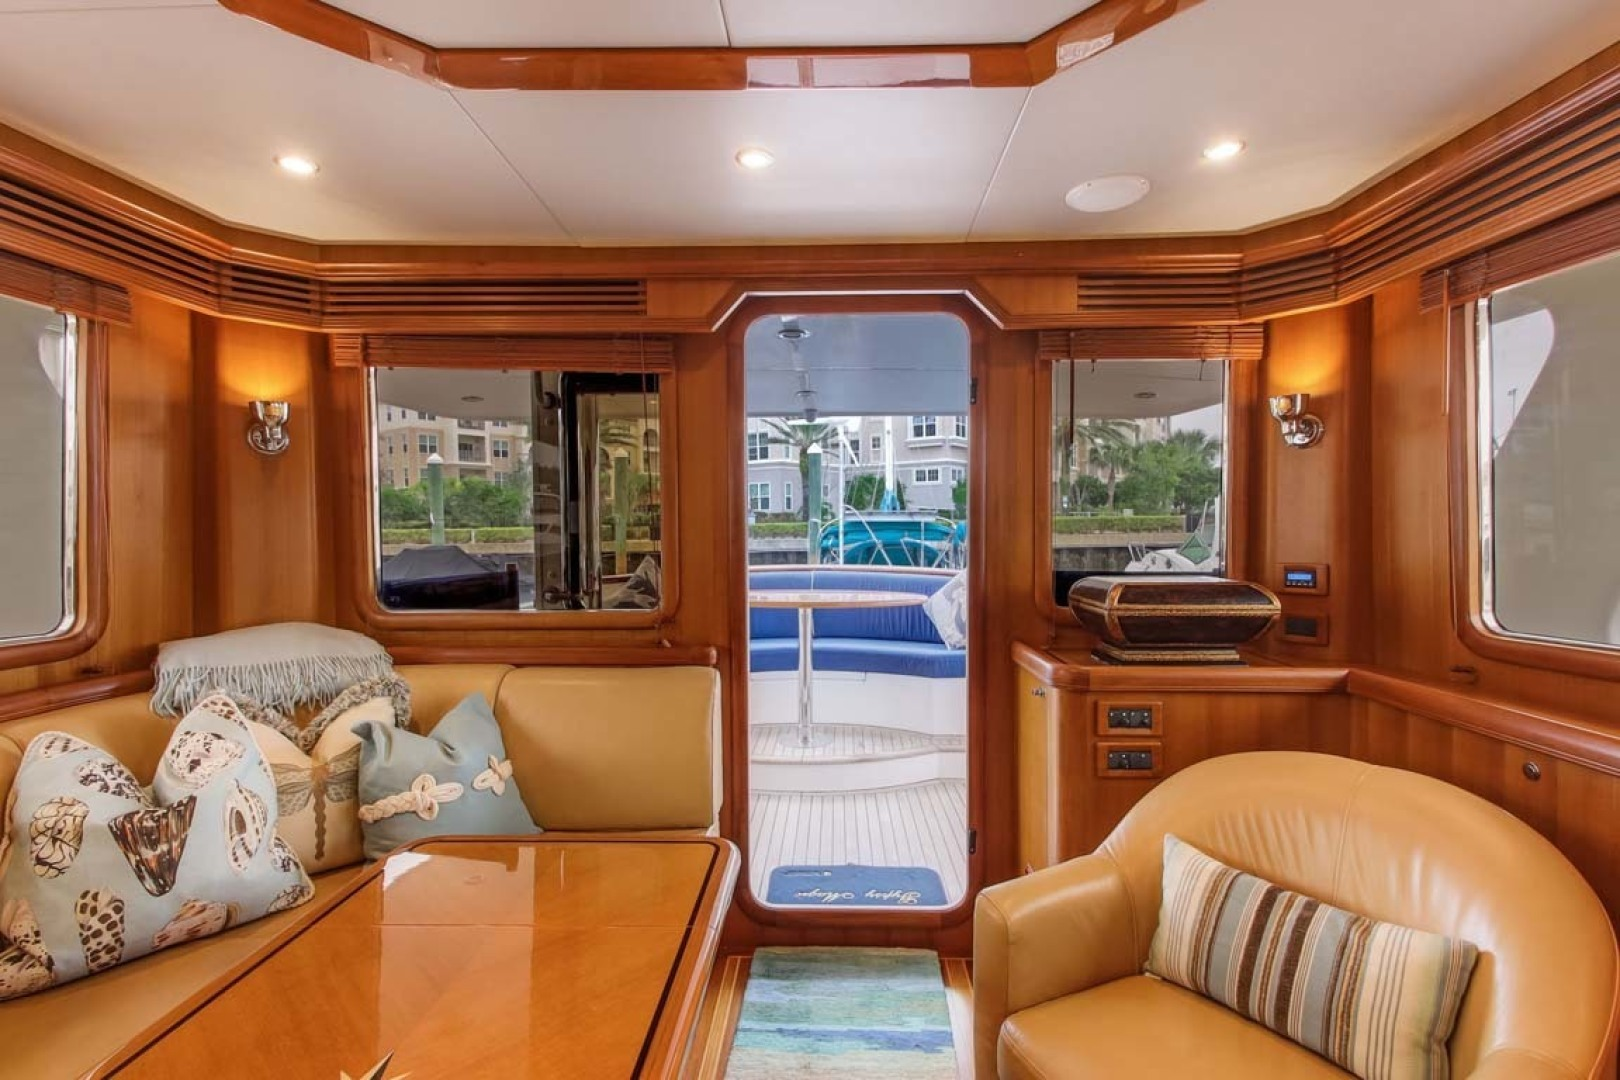 Selene-60 Ocean Trawler 2010-Gypsy Magic Jacksonville-Florida-United States-Salon-1346732 | Thumbnail